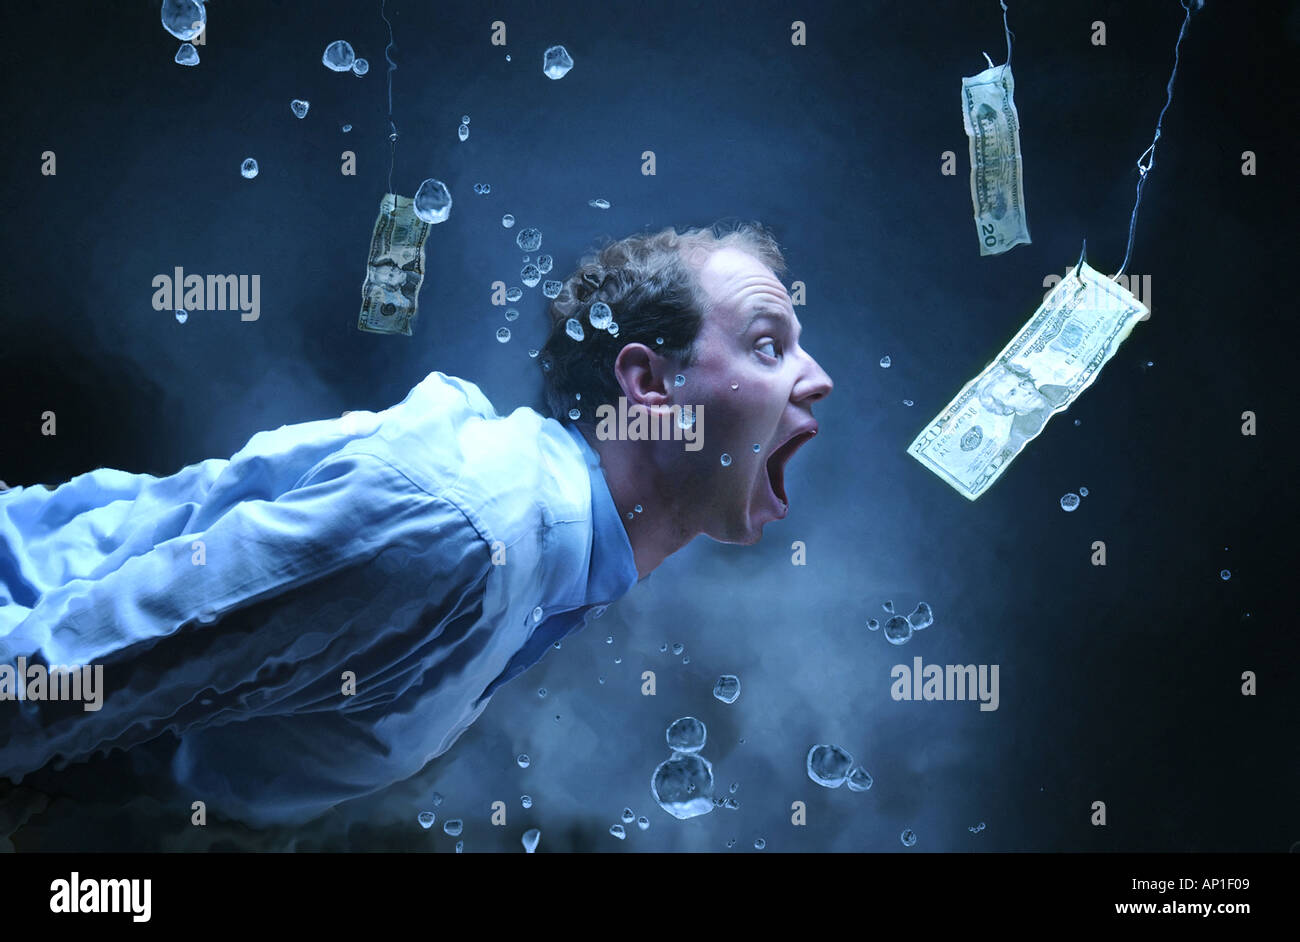 'business humor' concept man swimming underwater after money on fishing hook. Sucker deals. 'High Interest' - Stock Image